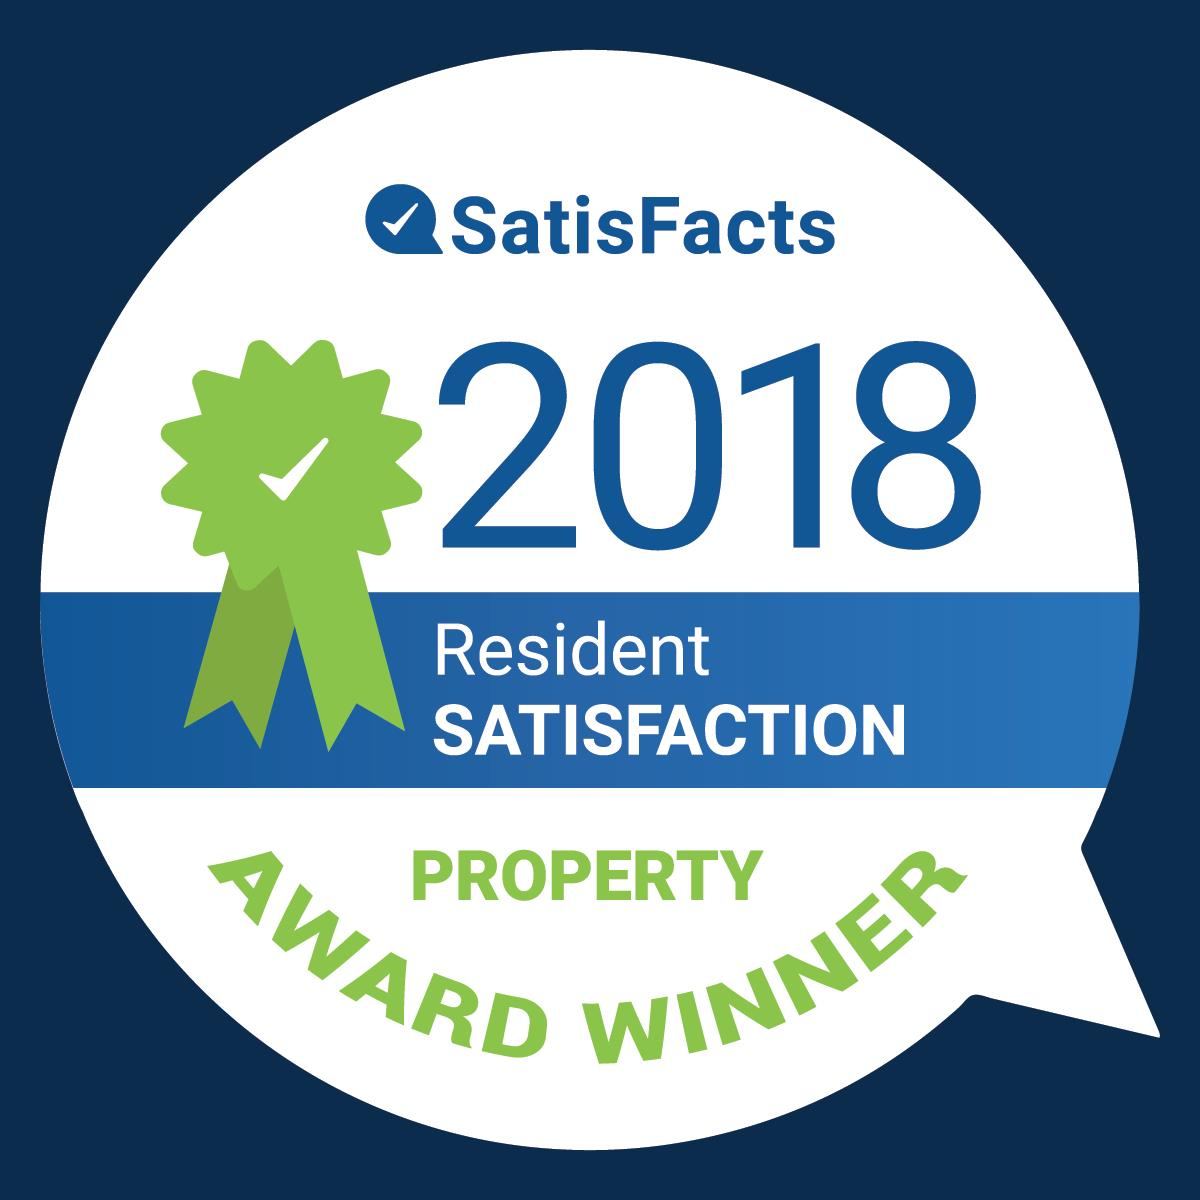 SatisFacts 2018 Resident Satisfaction Property Award Winner